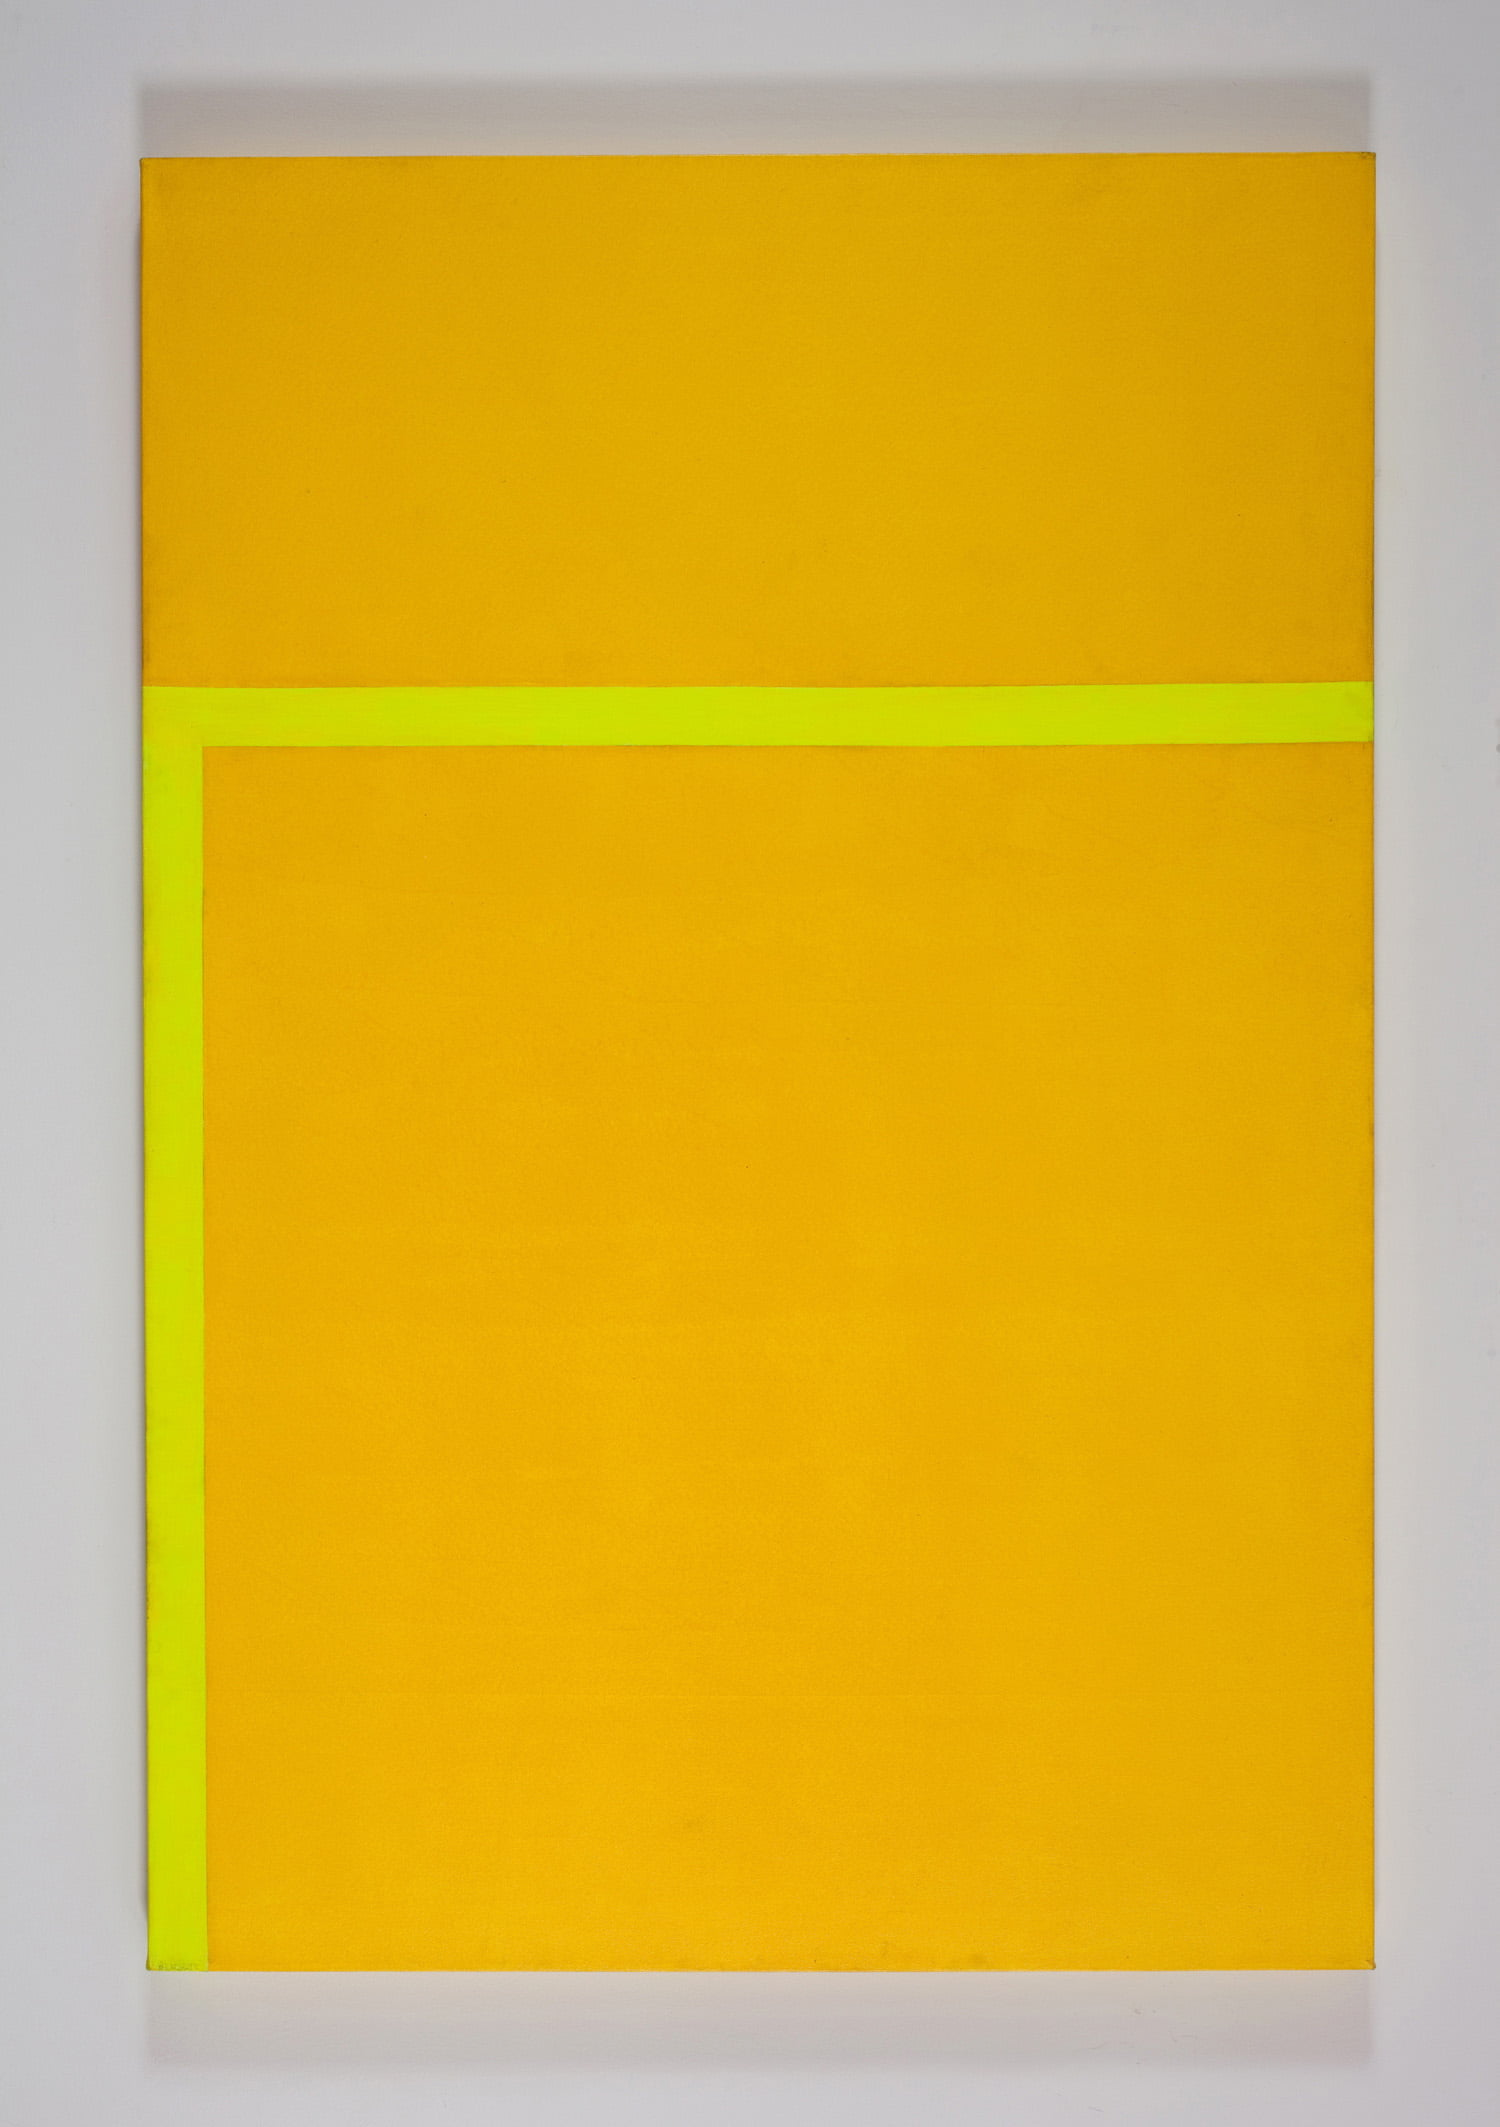 96799e3e carmen herrera two yellows